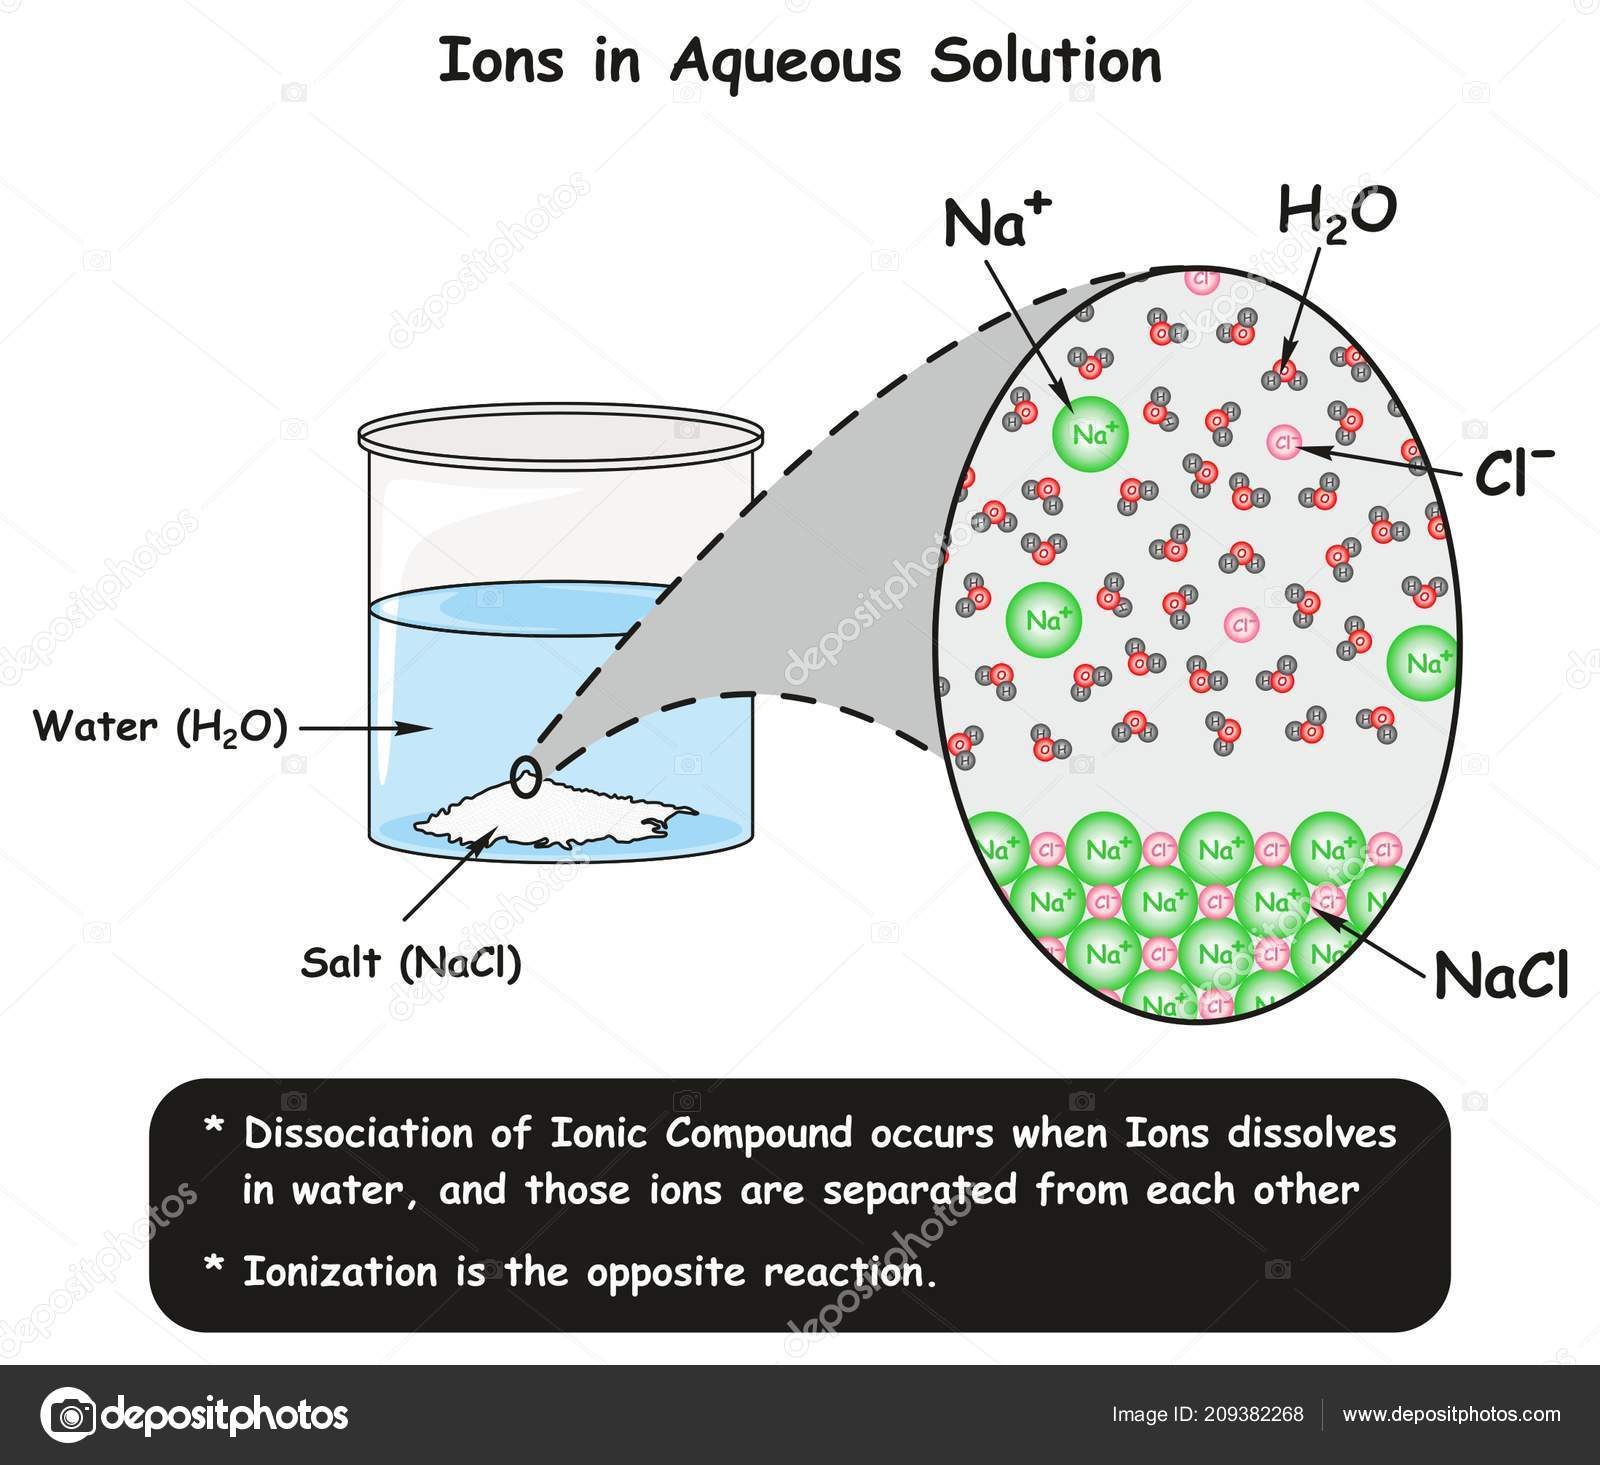 Ions aqueous solution infographic diagram showing dissociation ions aqueous solution infographic diagram showing dissociation reaction sodium chloride stock vector ccuart Gallery